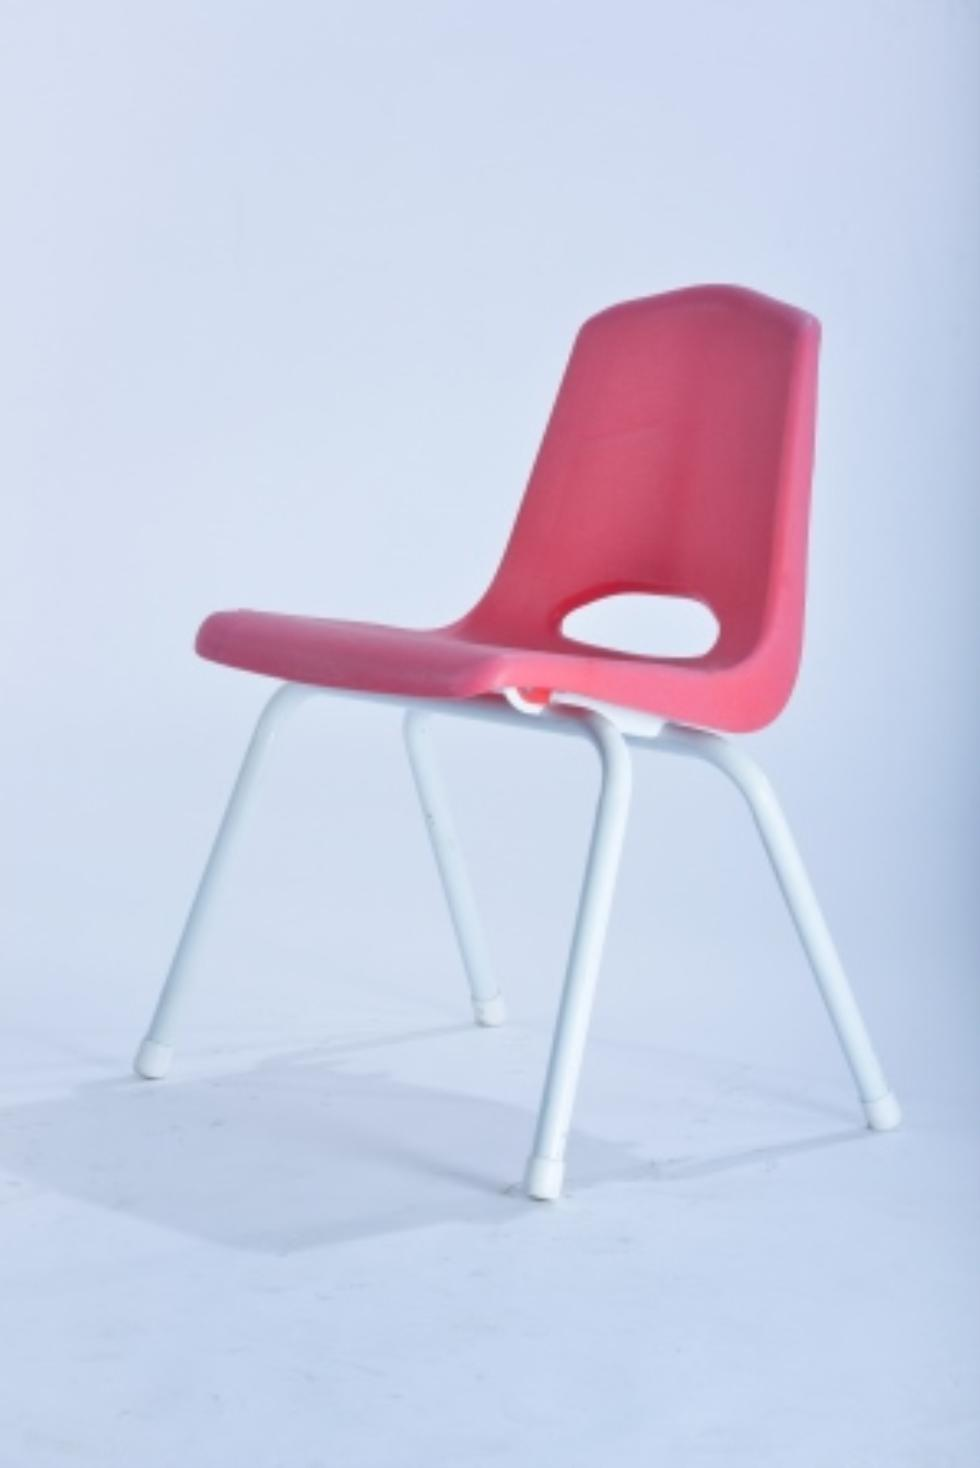 Marianne S Rentals Children S Chair With Metal Legs Red